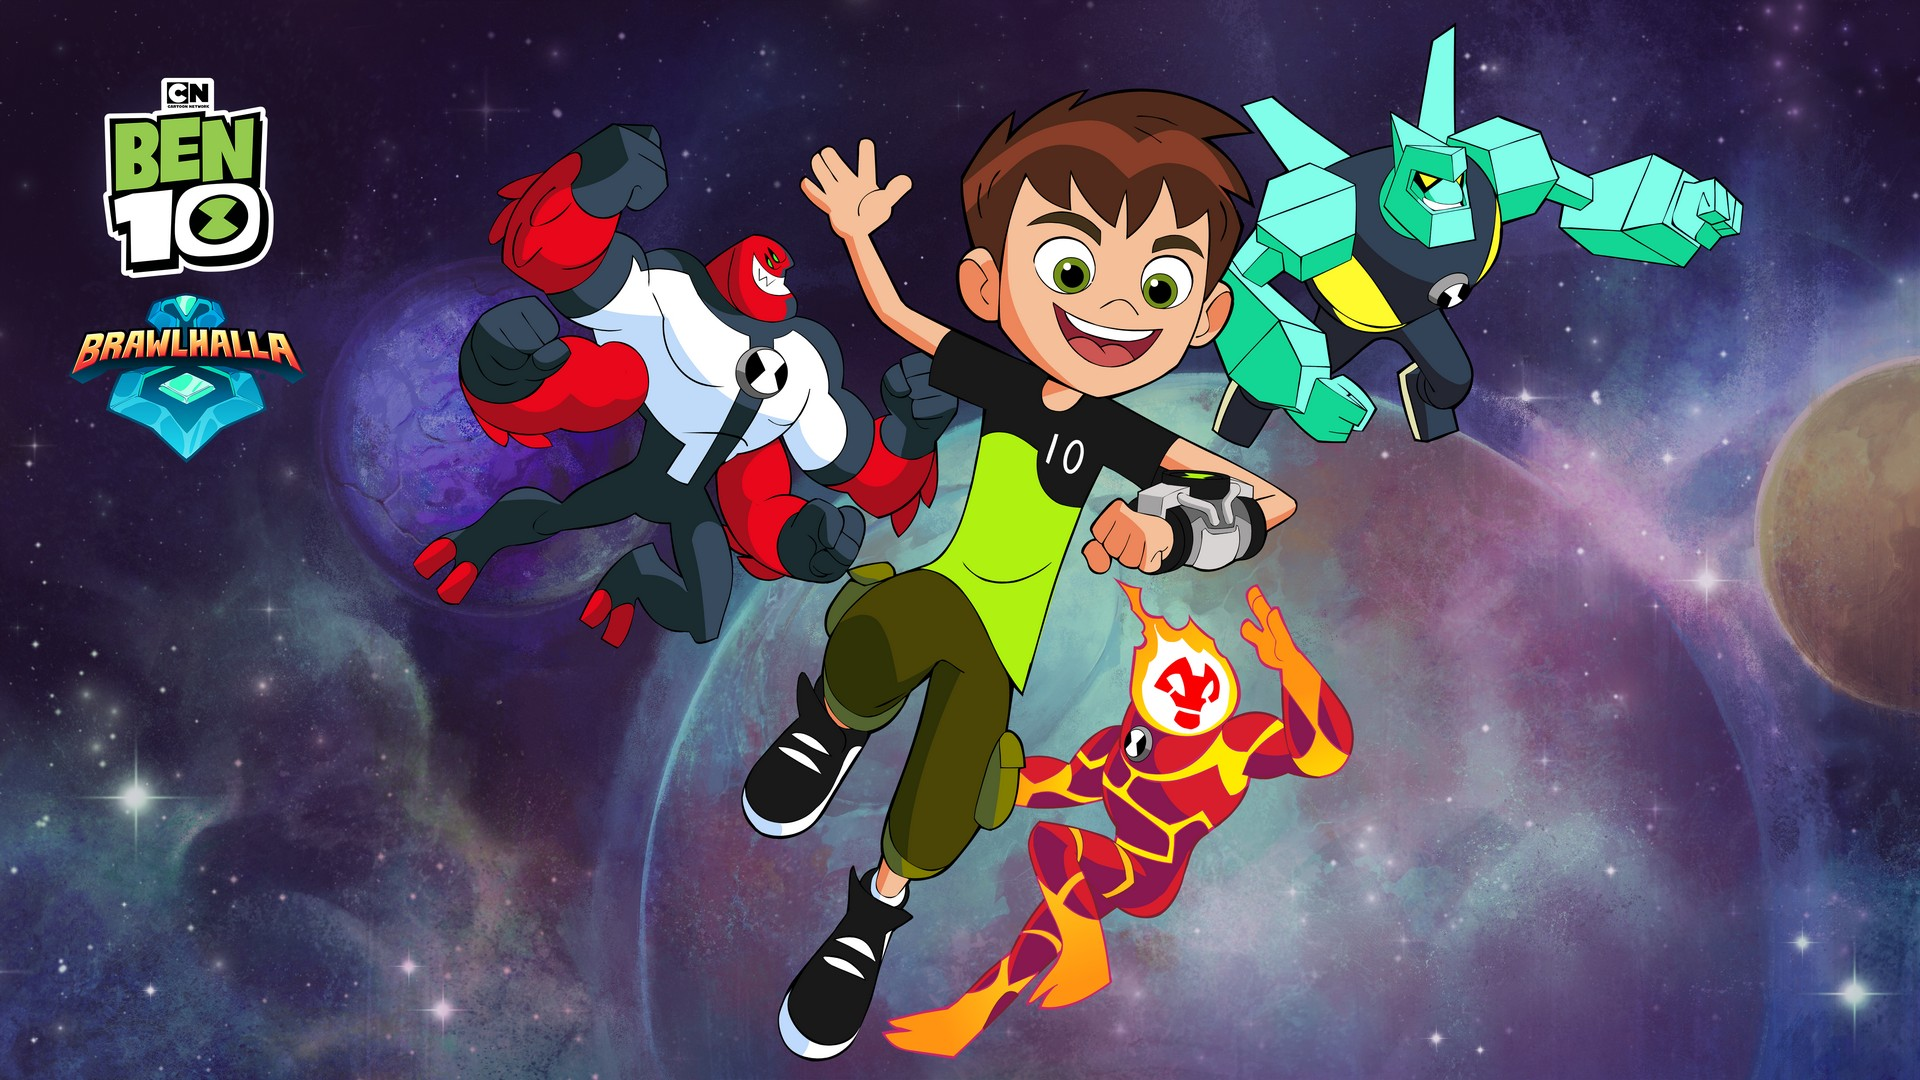 Cartoon Network's Ben 10 Crash Lands into BRAWLHALLA as Epic Crossovers